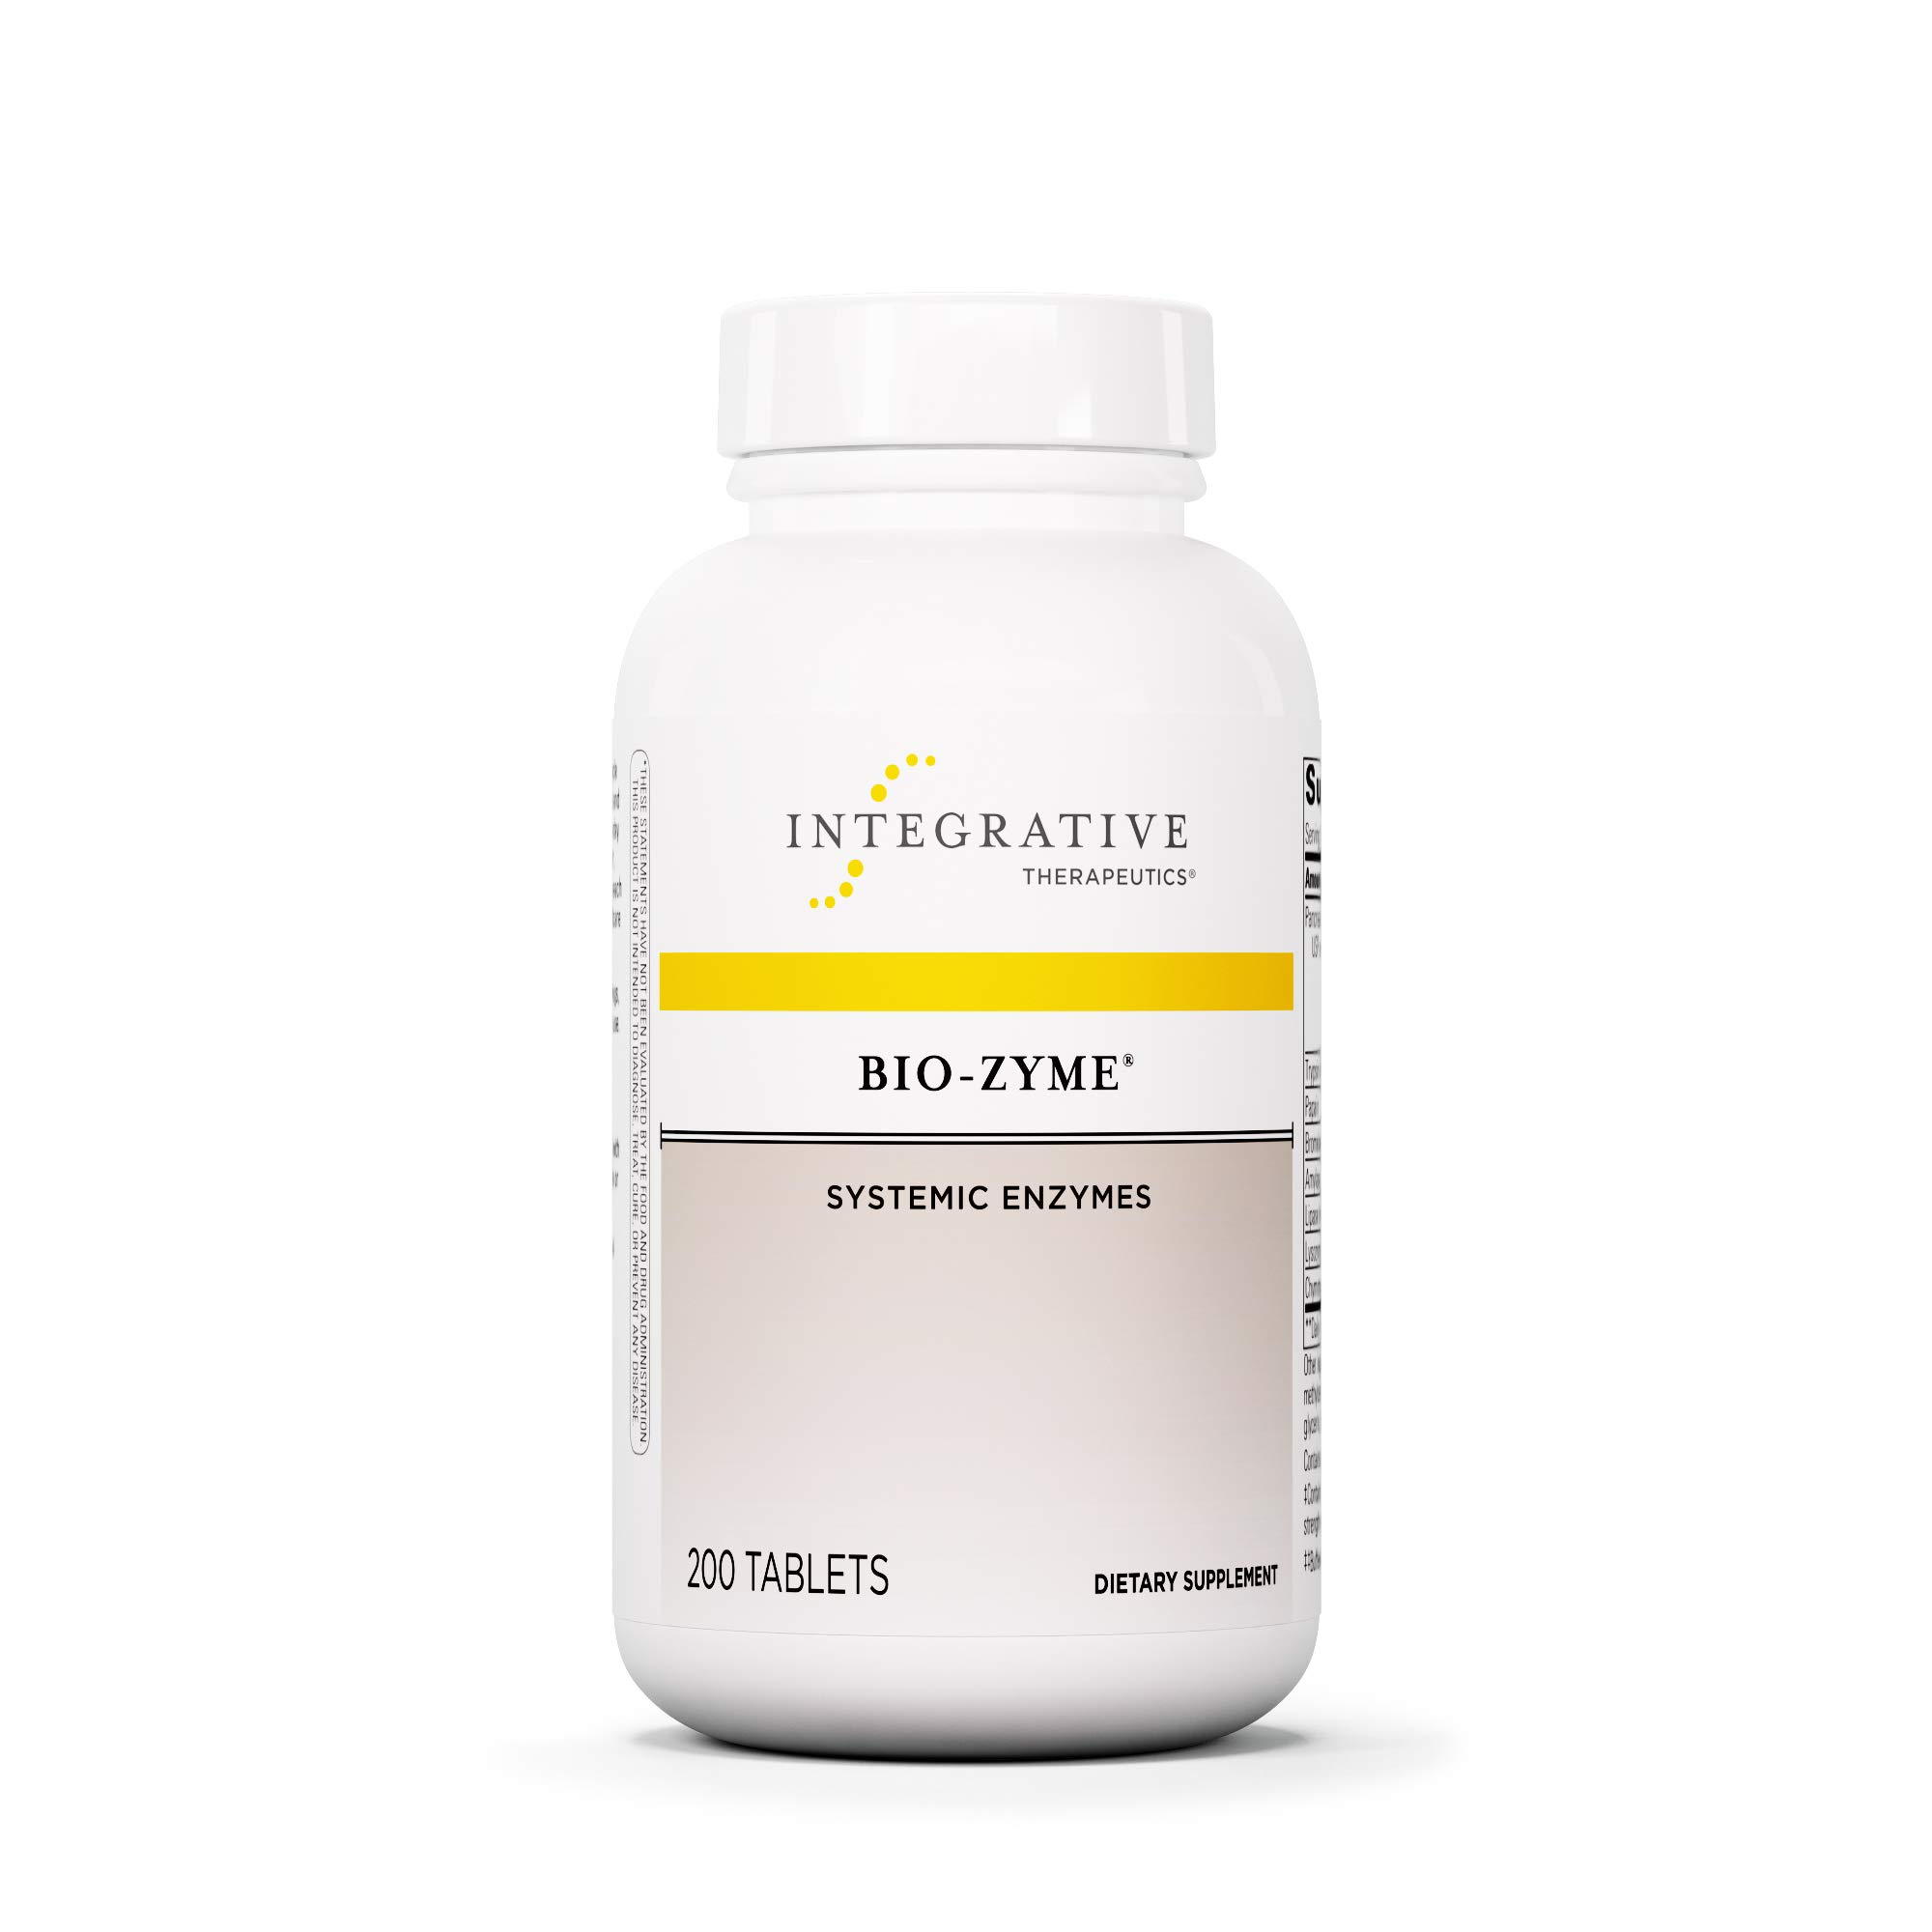 Integrative Therapeutics - Bio-Zyme - Systemic Enzymes - Full-Strength Pancreatic Enzyme Complex to Support Digestive Health - 200 Tablets by Integrative Therapeutics